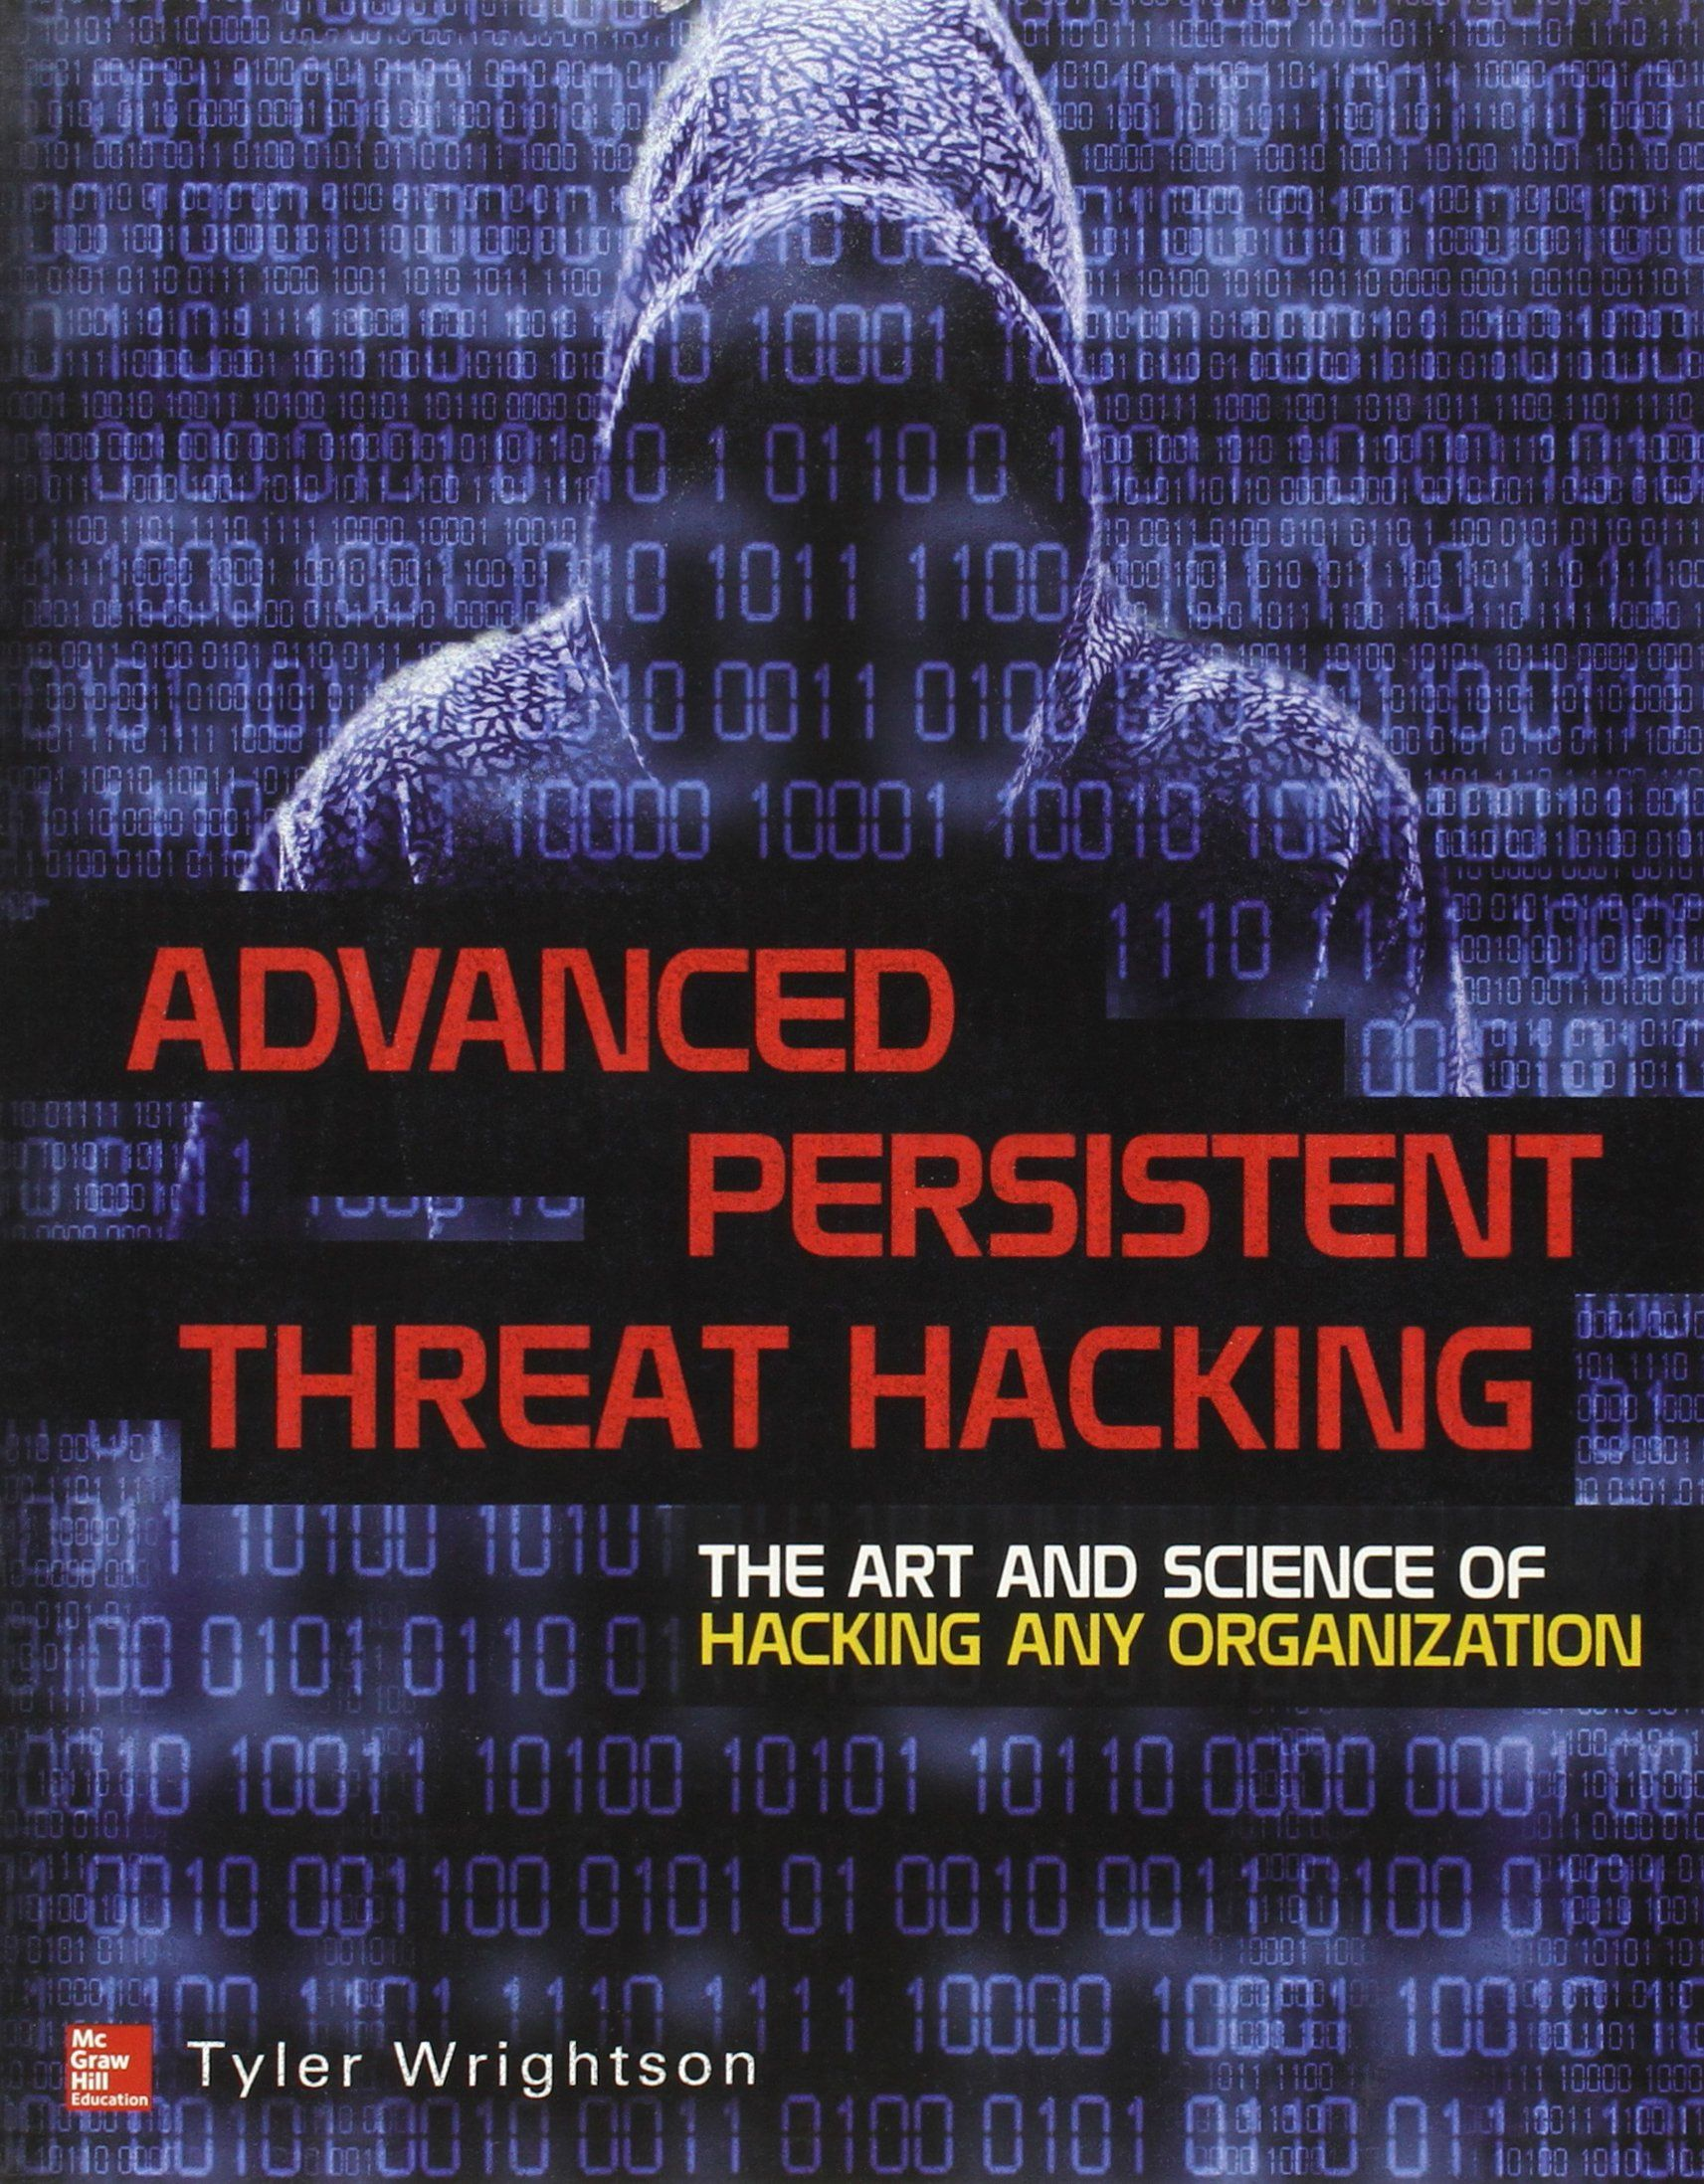 Advanced Persistent Threat Hacking: The Art and Science of Hacking Any Organization: Tyler Wrightson: 9780071828369: Amazon.com: Books